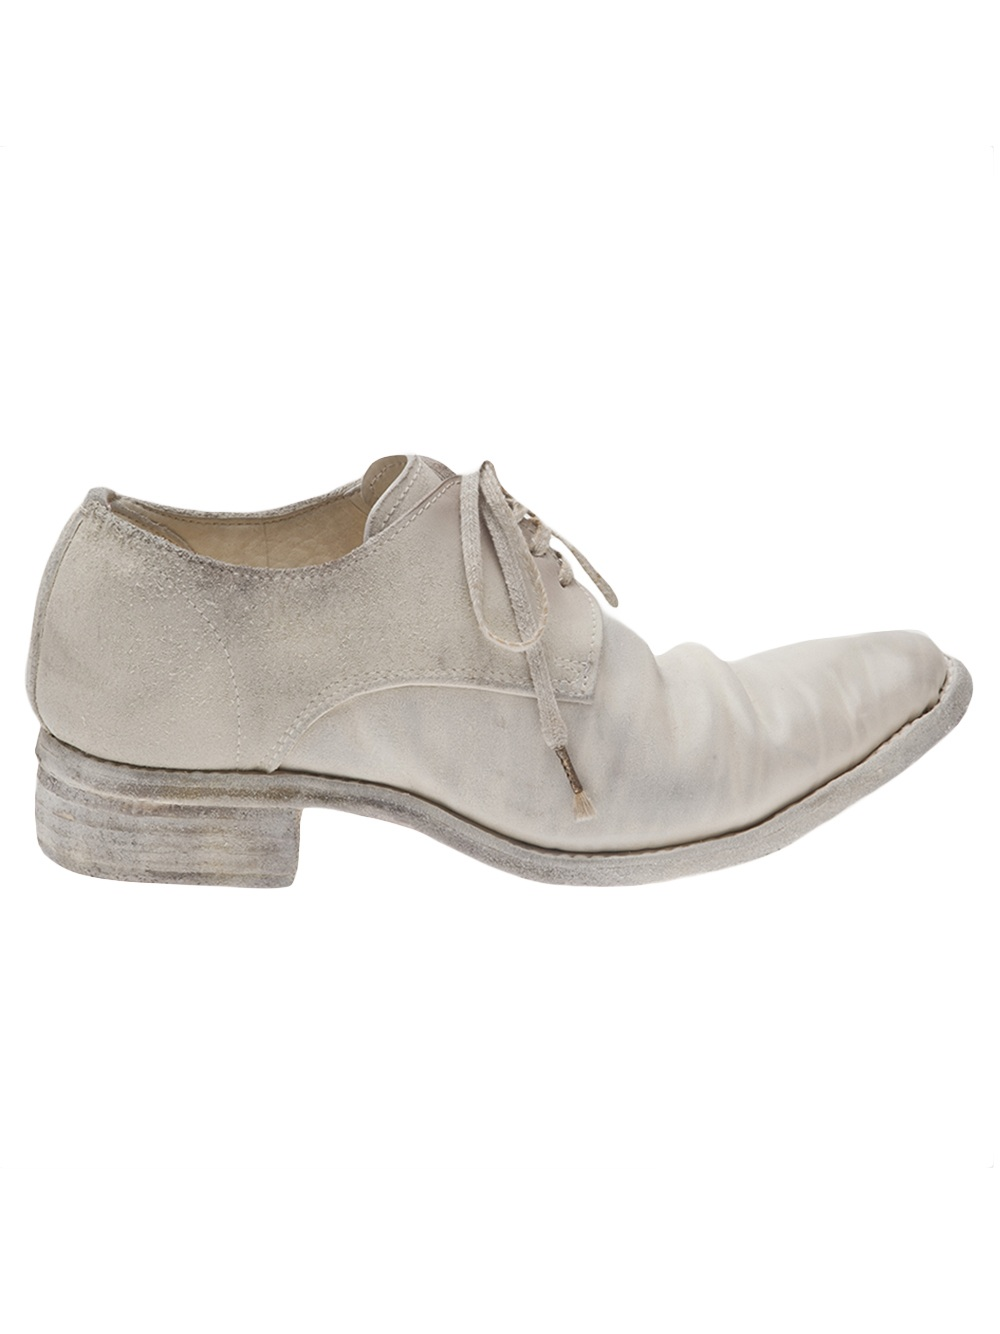 Carol Christian Poell Shoes For Sale